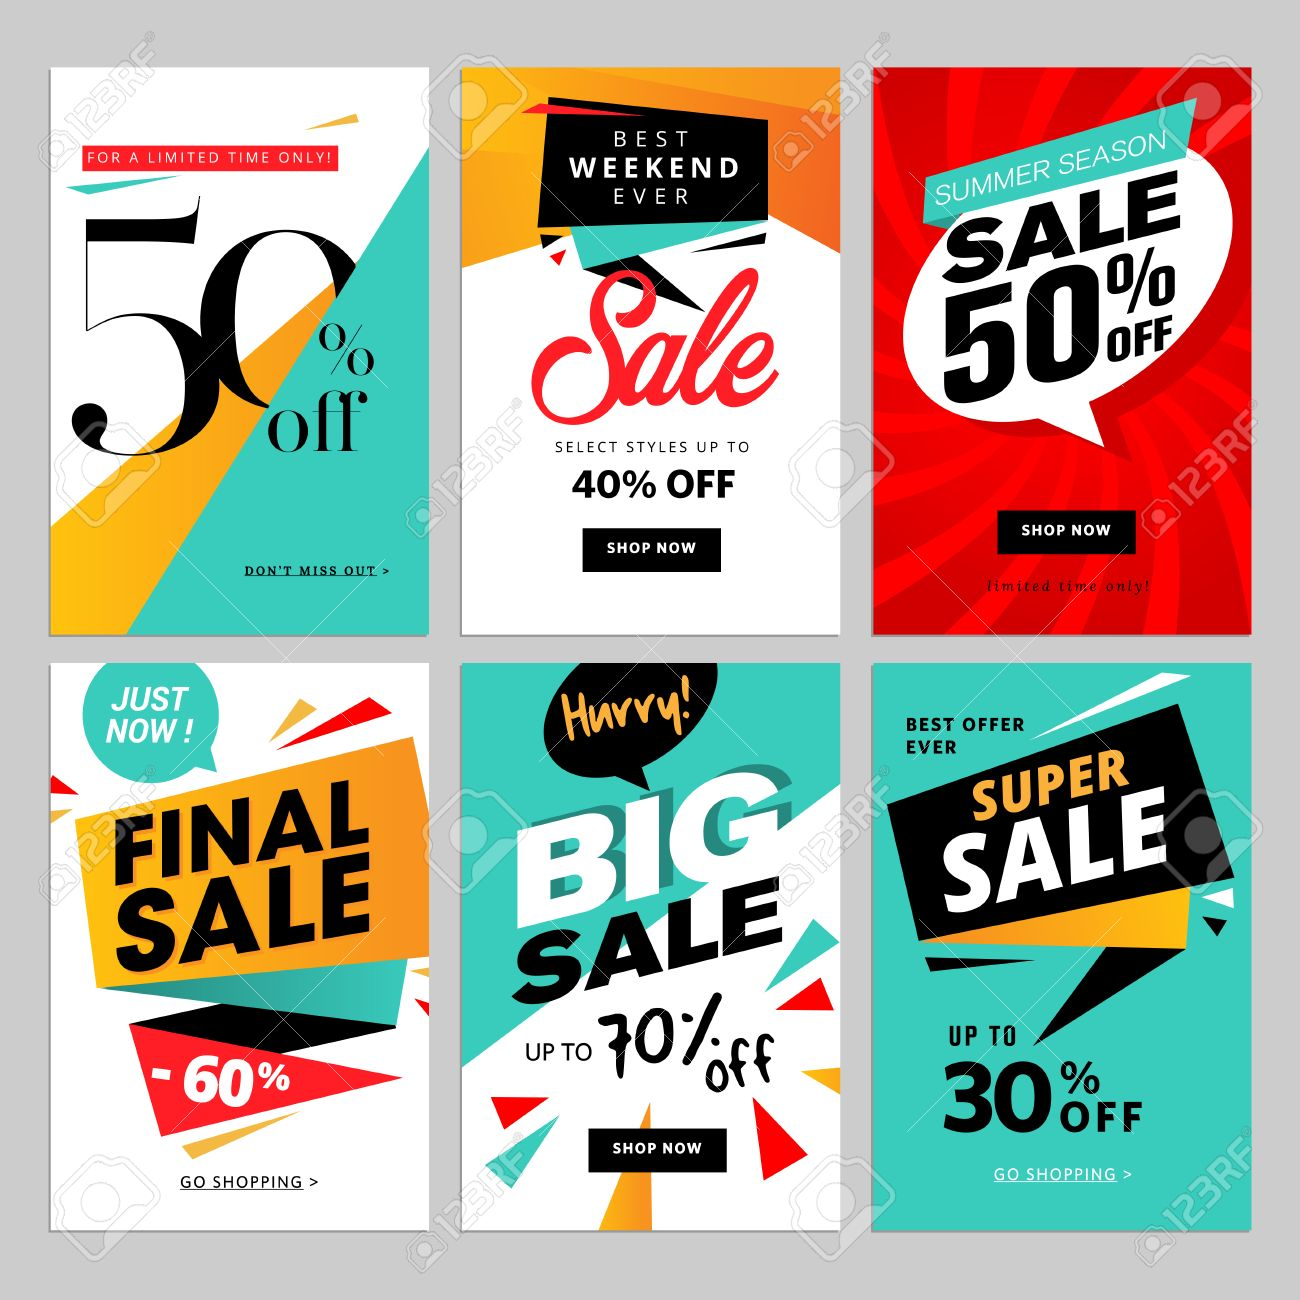 Flat design eye catching sale website banners for mobile phone. - 60002332